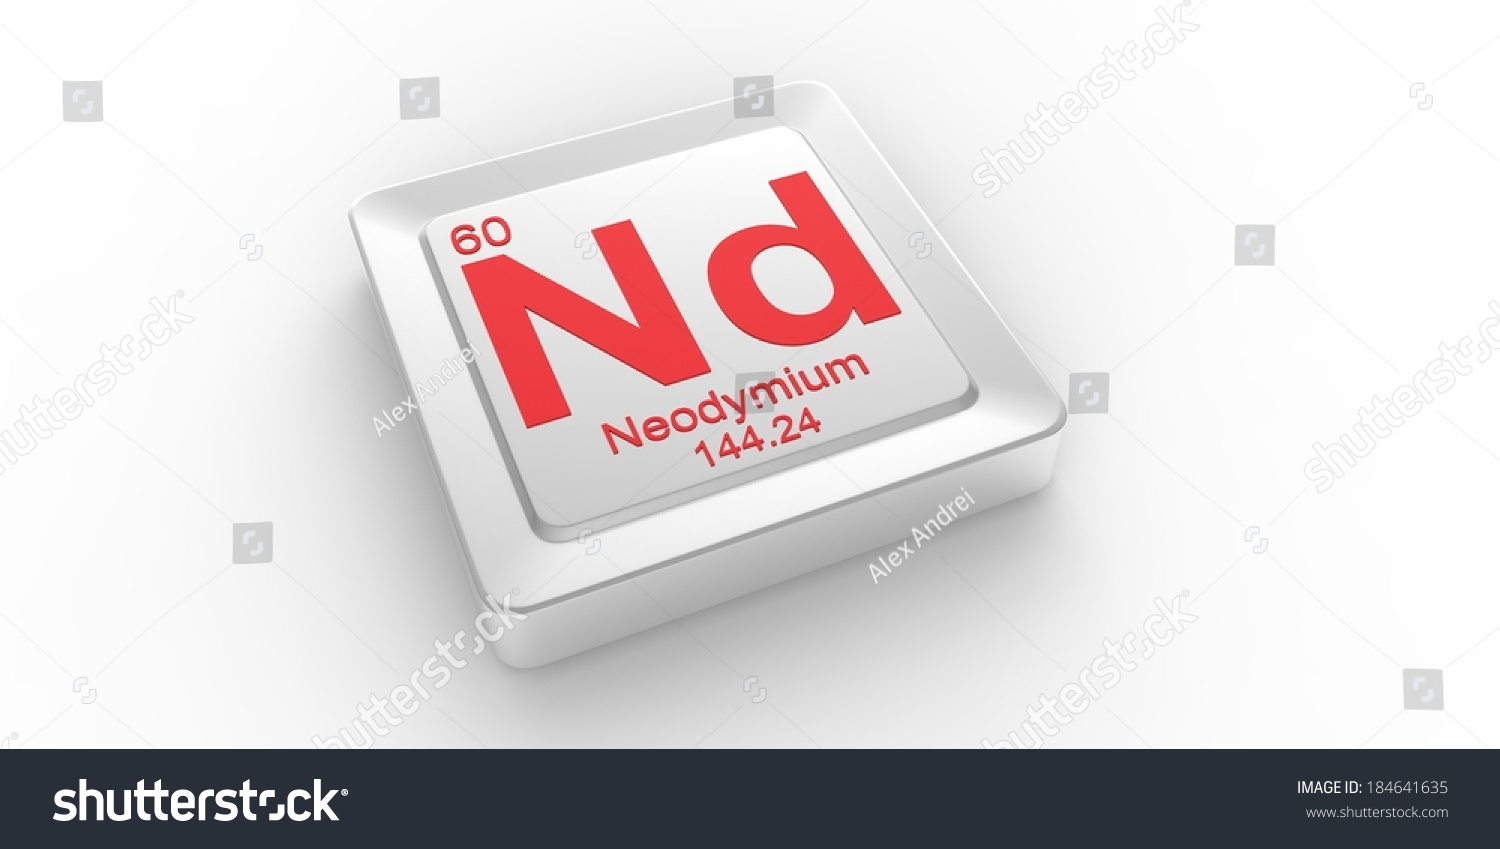 Nd symbol 60 material neodymium chemical stock illustration nd symbol 60 material for neodymium chemical element of the periodic table gamestrikefo Choice Image